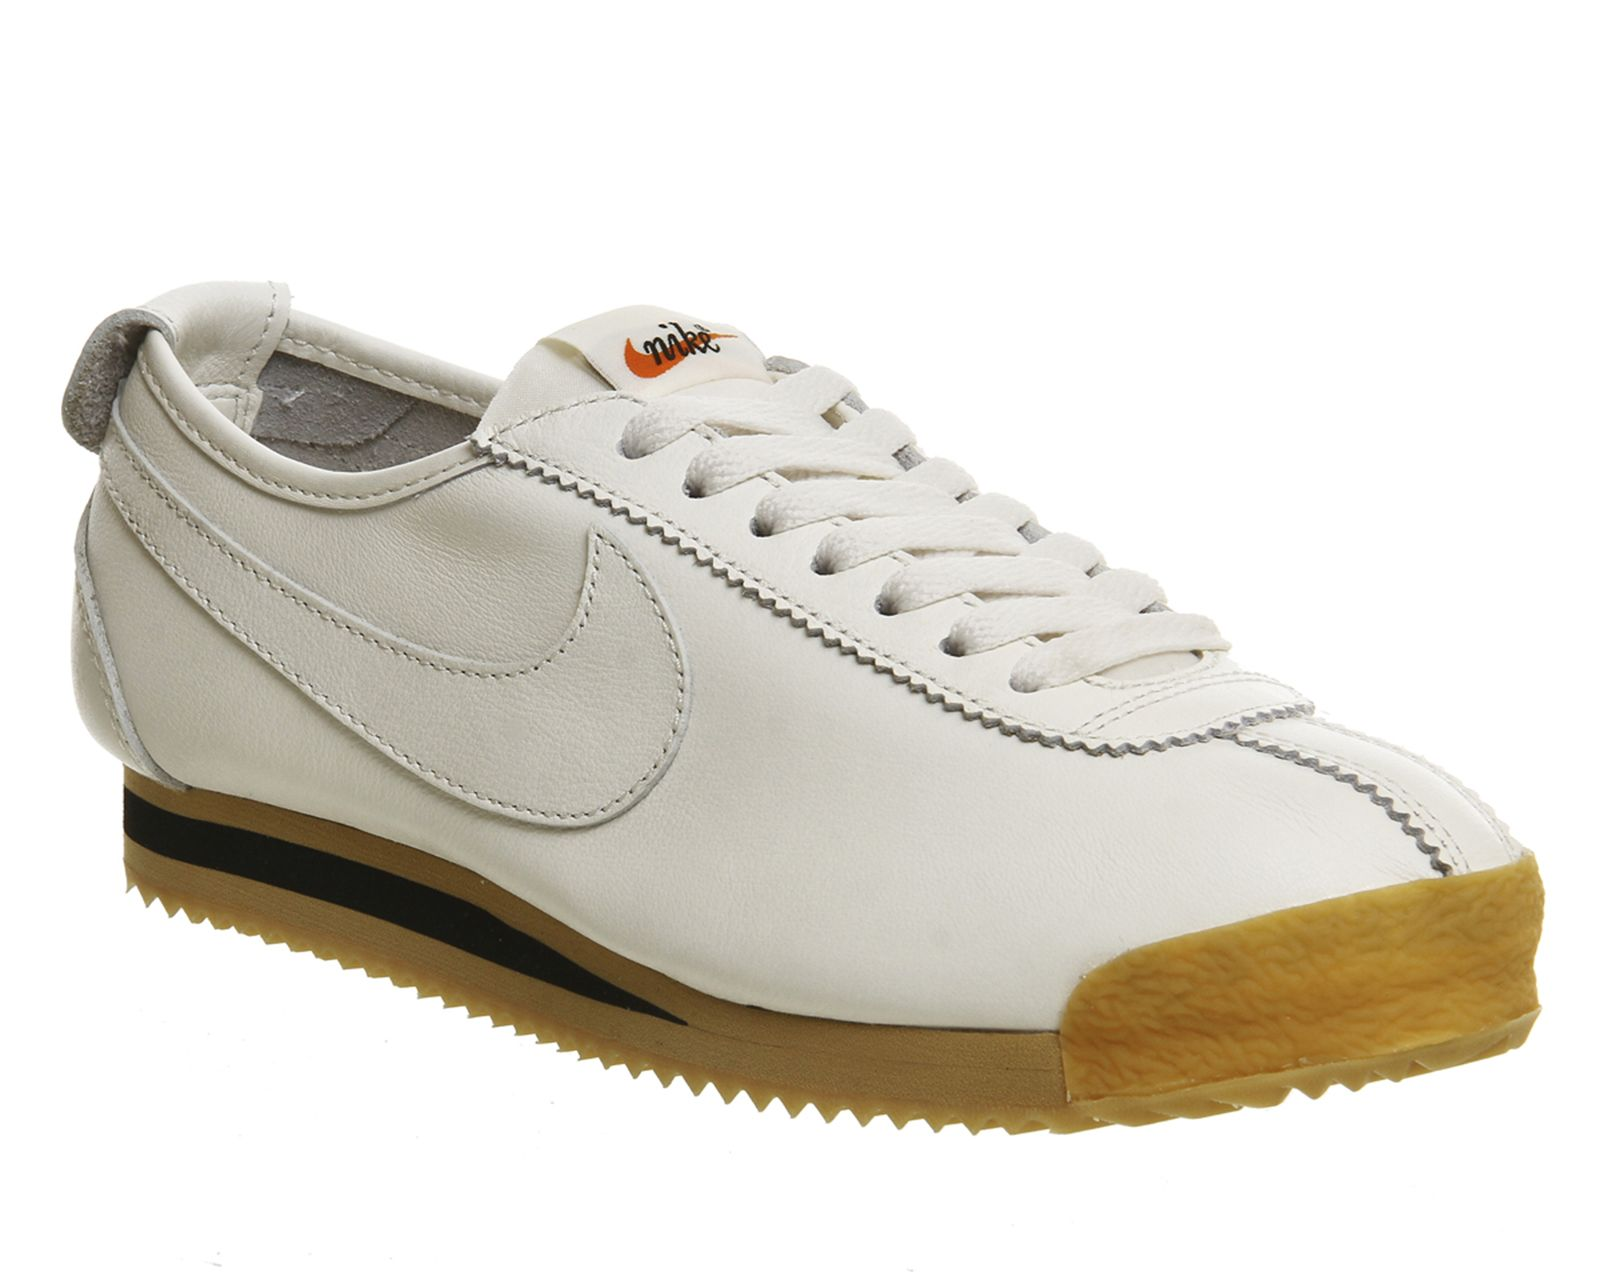 on sale ecb32 41814 Buy Sail Salsa Gum Qs Nike Wmns Cortez '72 from OFFICE.co.uk ...